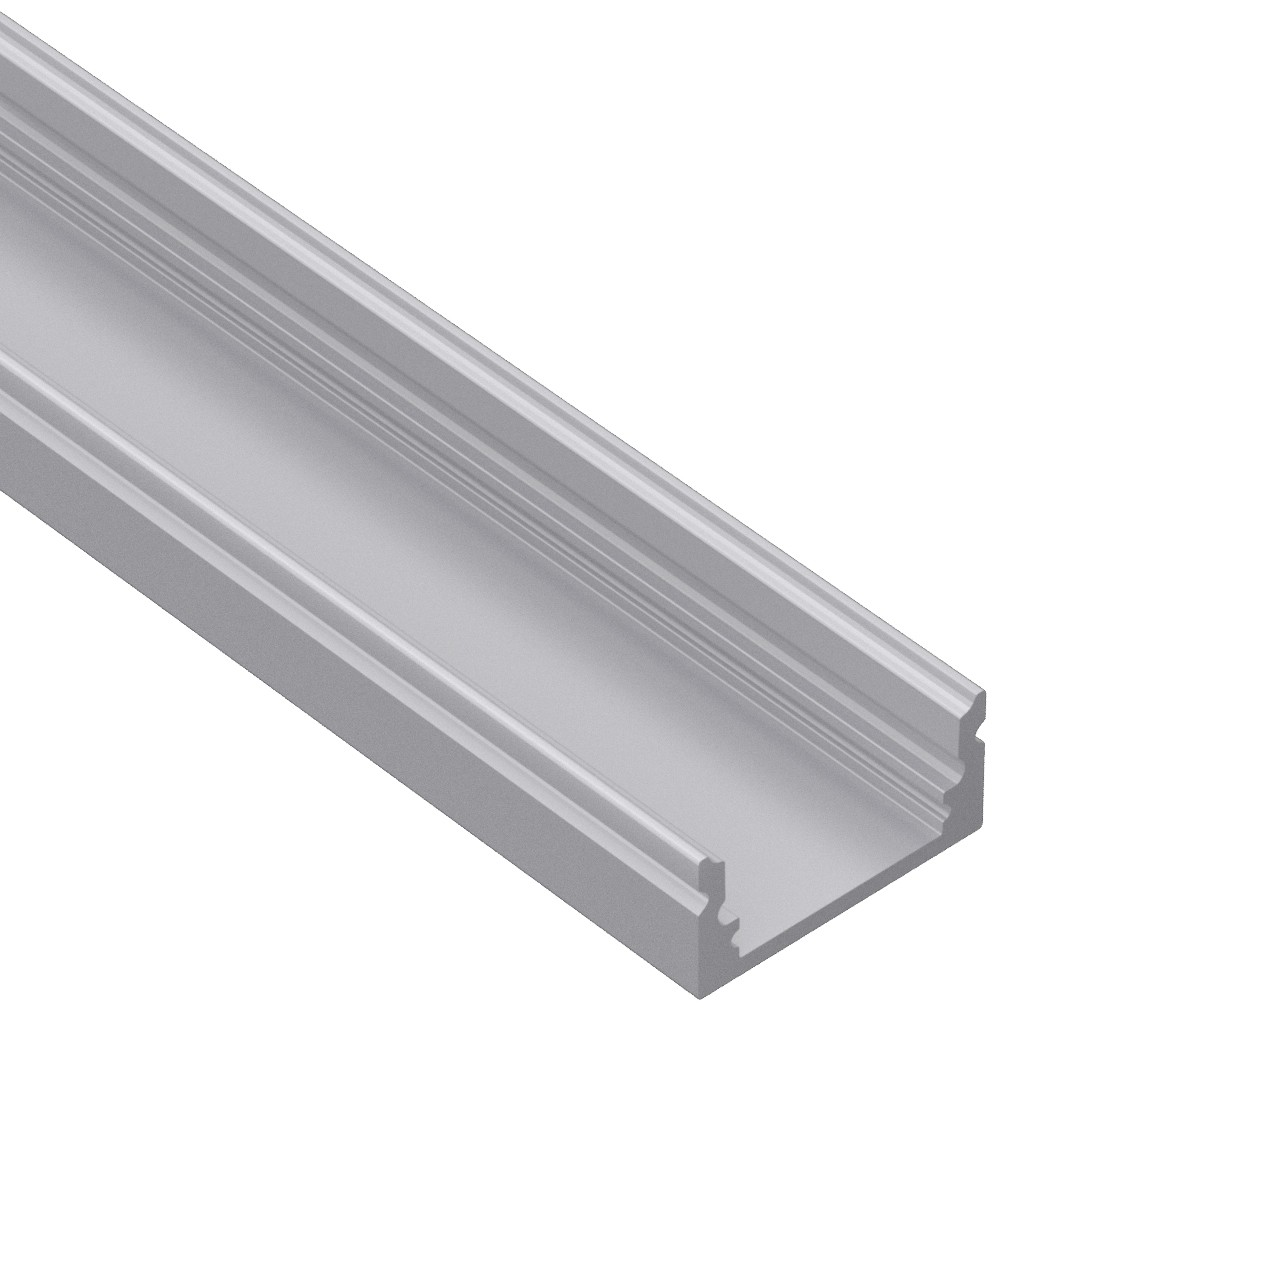 AS1 Thin and best seller square led profile 17x8.5mm